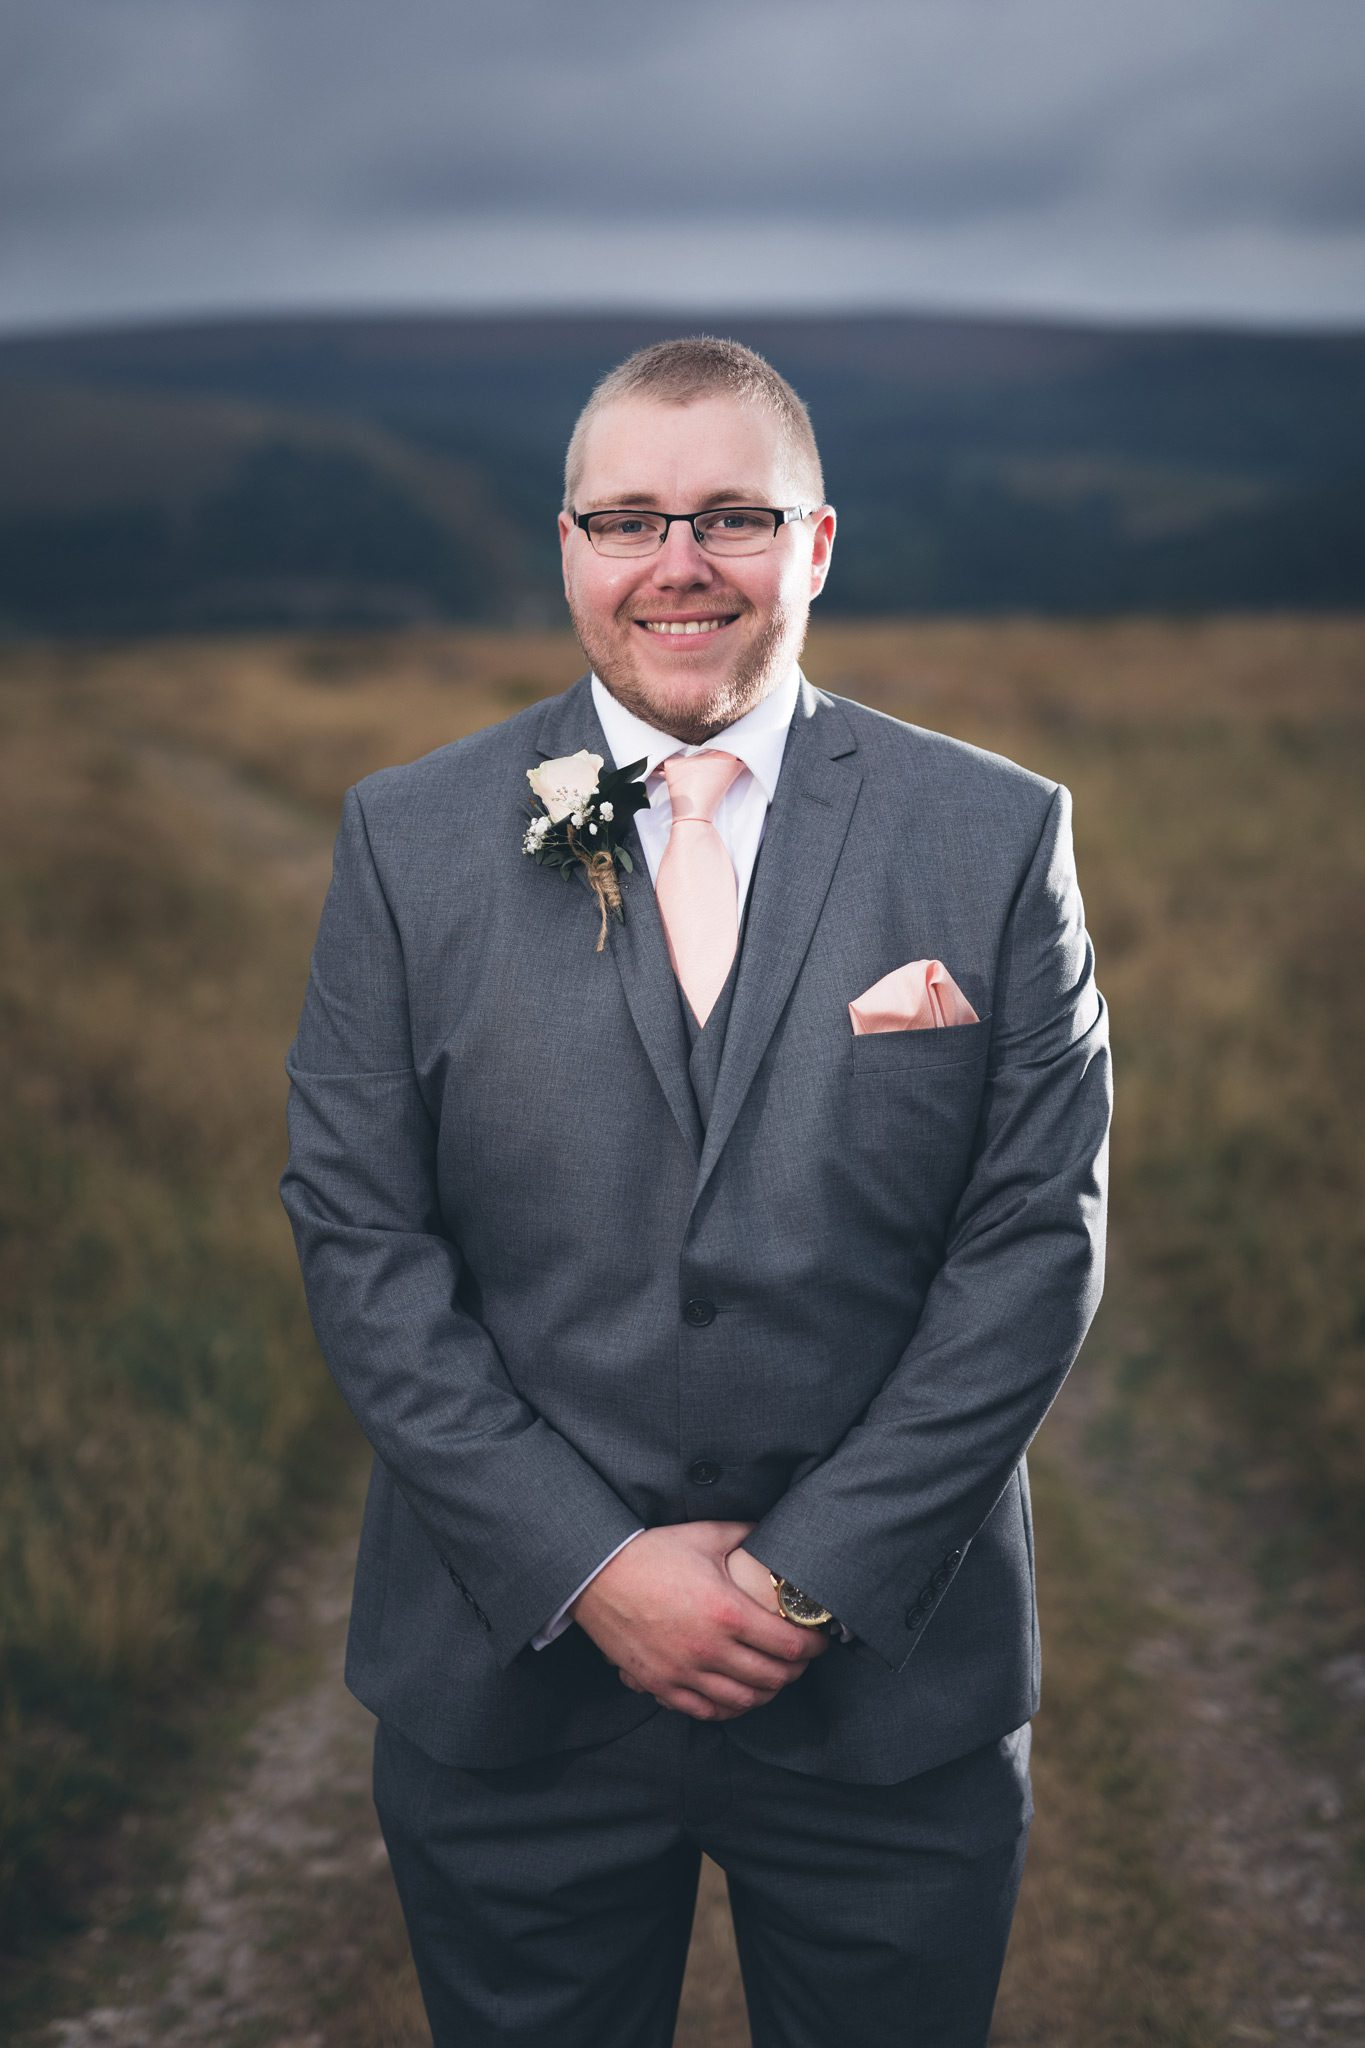 Goyt Valley Wedding Photo of the Groom